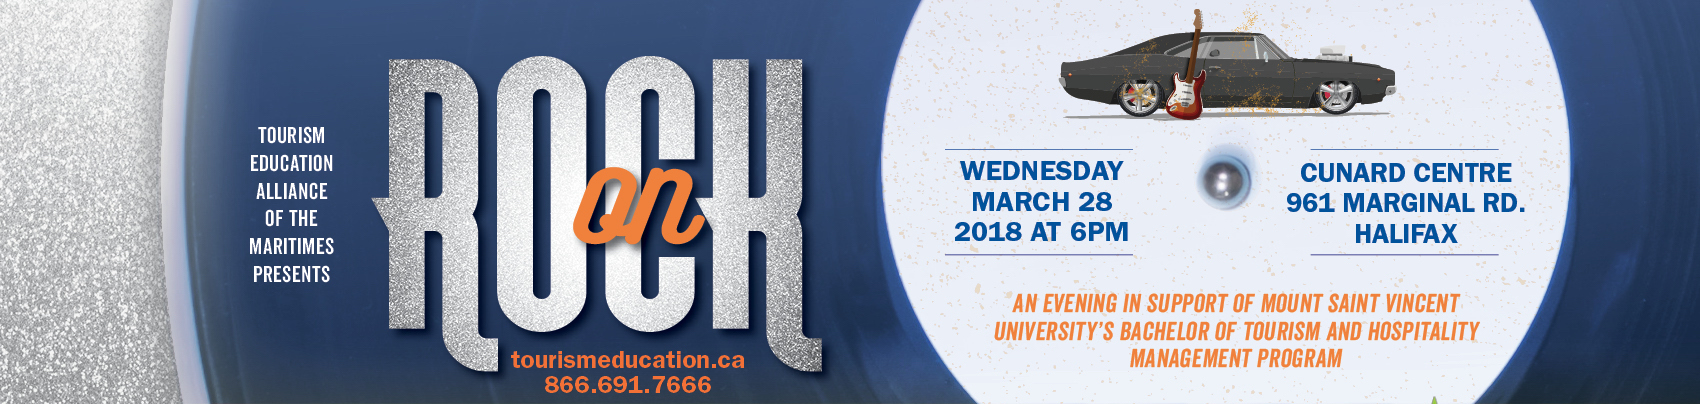 Tourism Education Alliance of the Maritimes 2018 Rock On Charity Auction